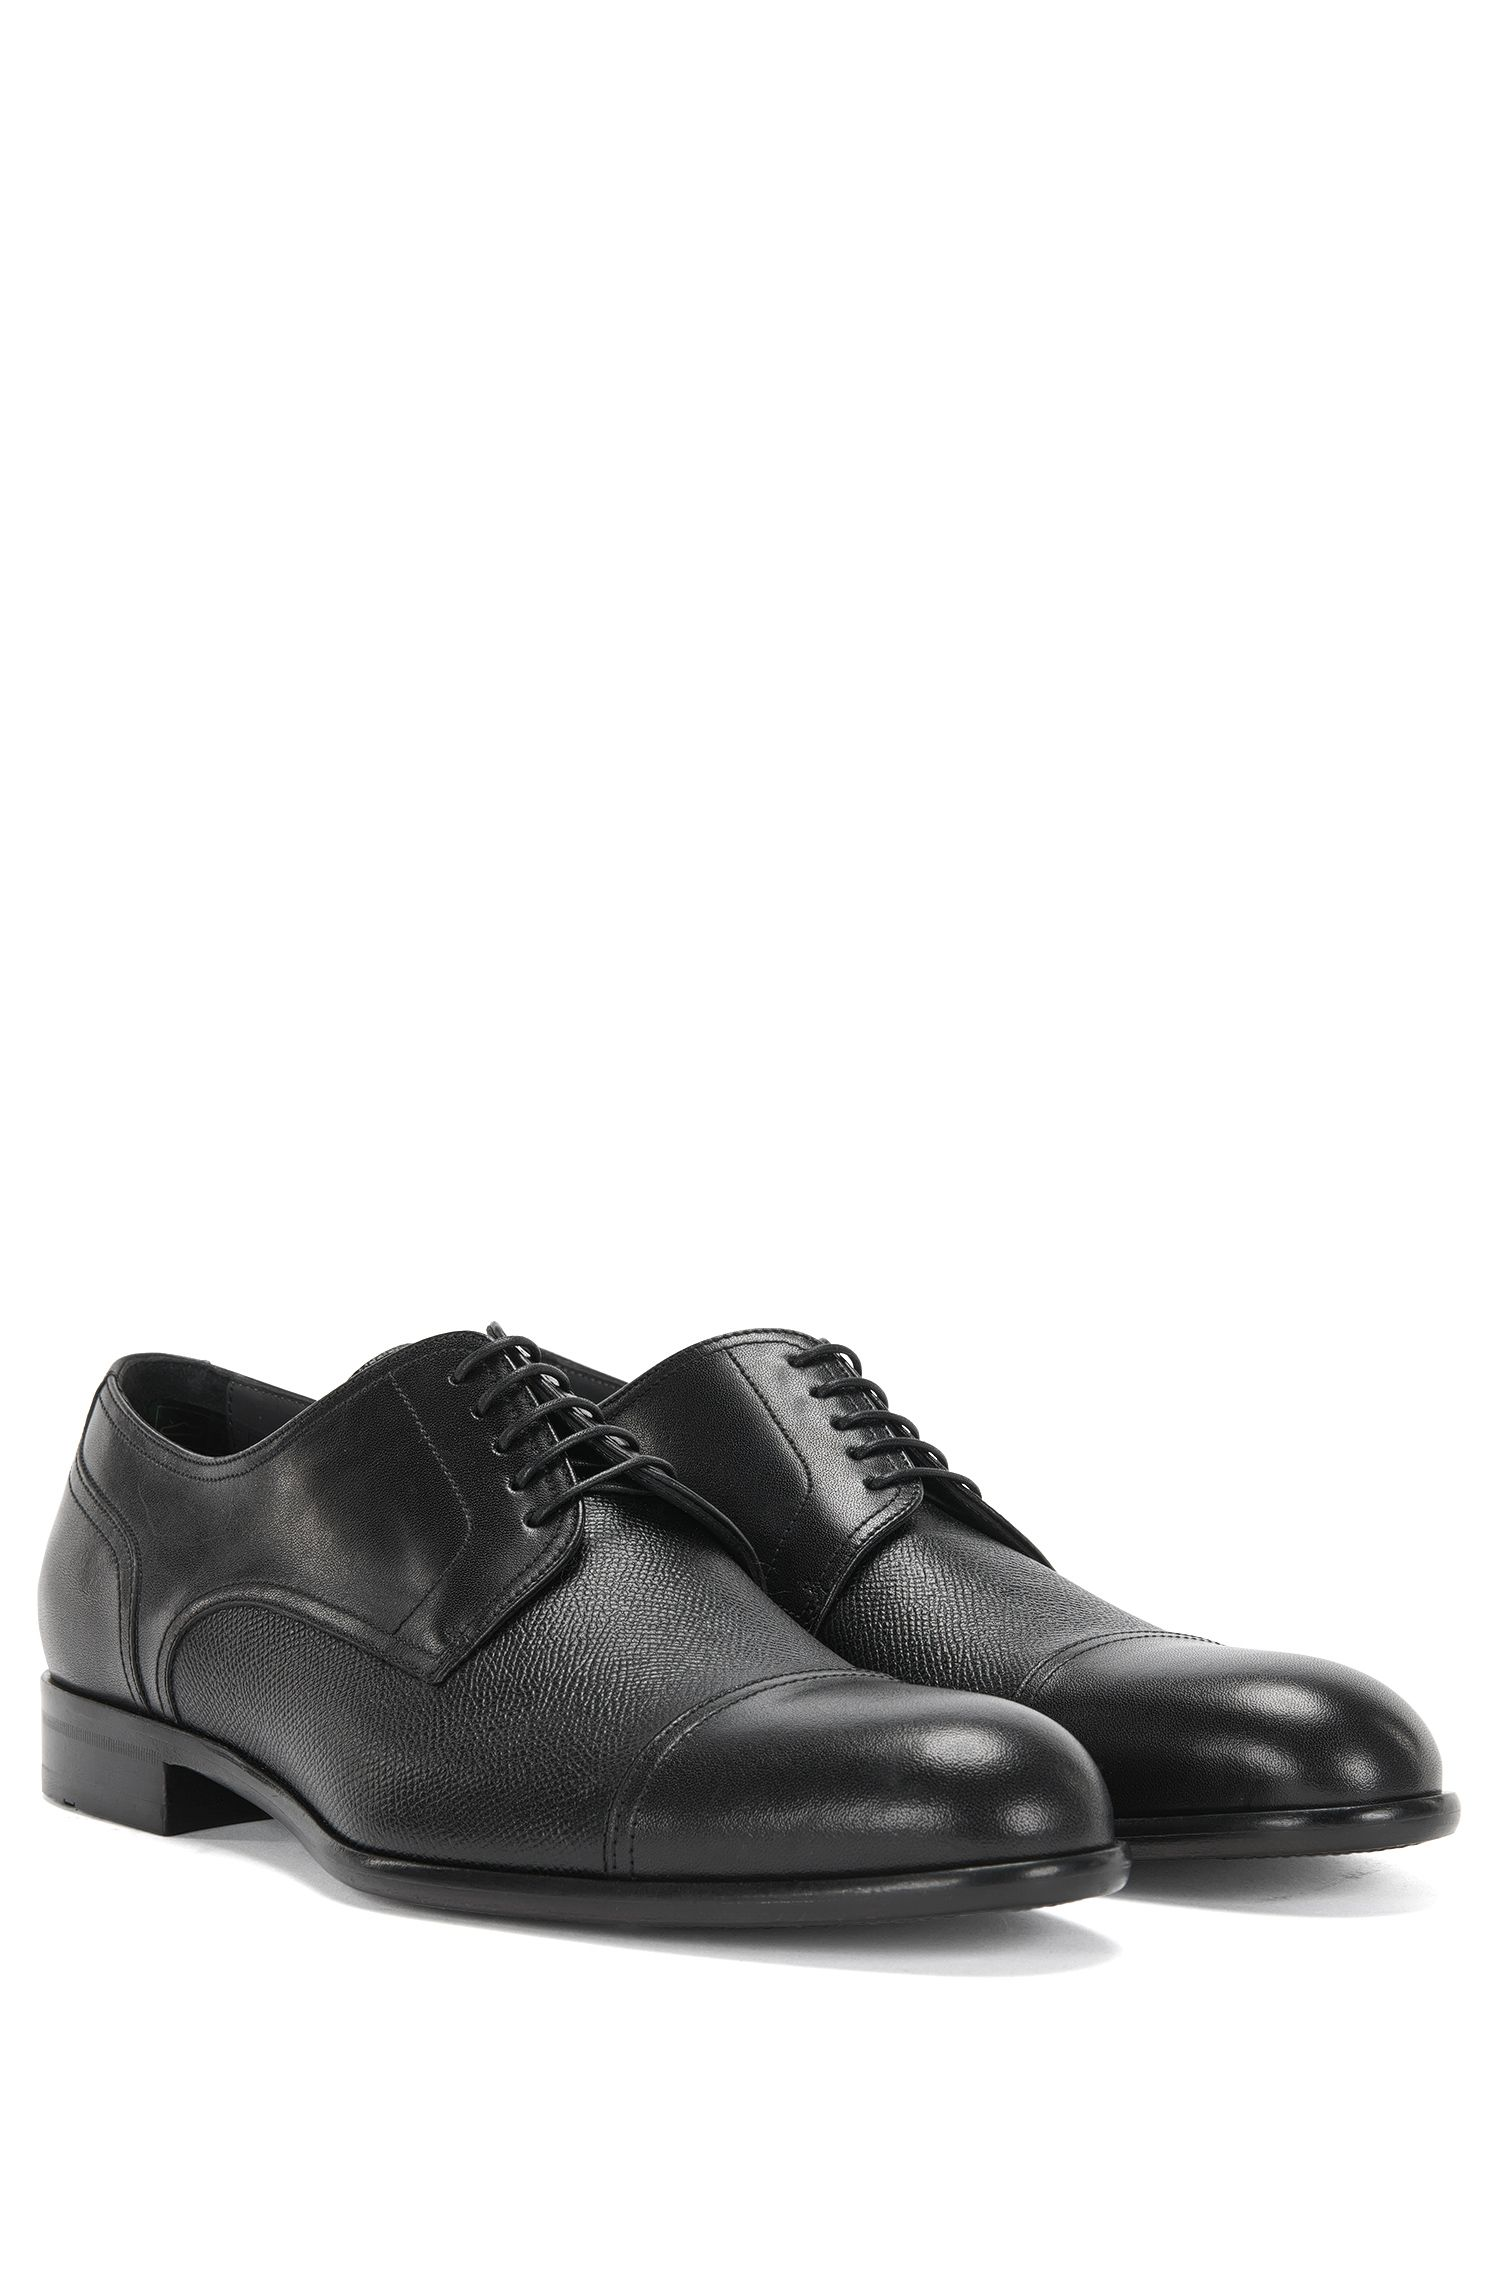 'Manhattan Derb Mxct' | Italian Calfskin Cap Toe Derby Dress Shoes